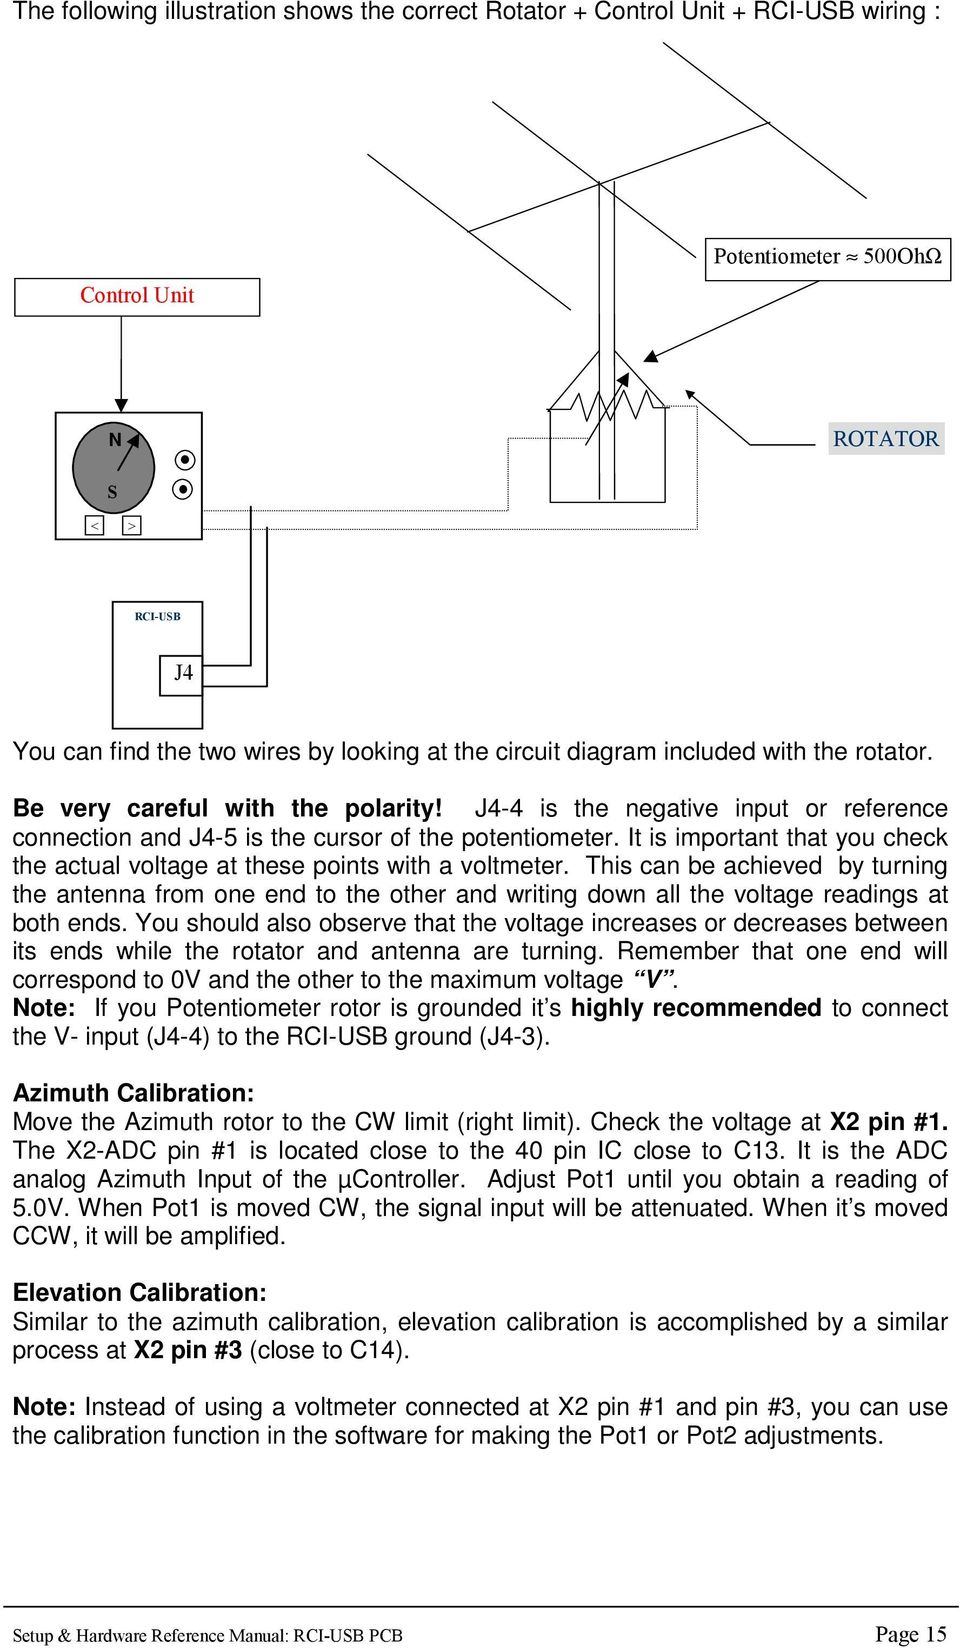 hight resolution of it is important that you check the actual voltage at these points with a voltmeter